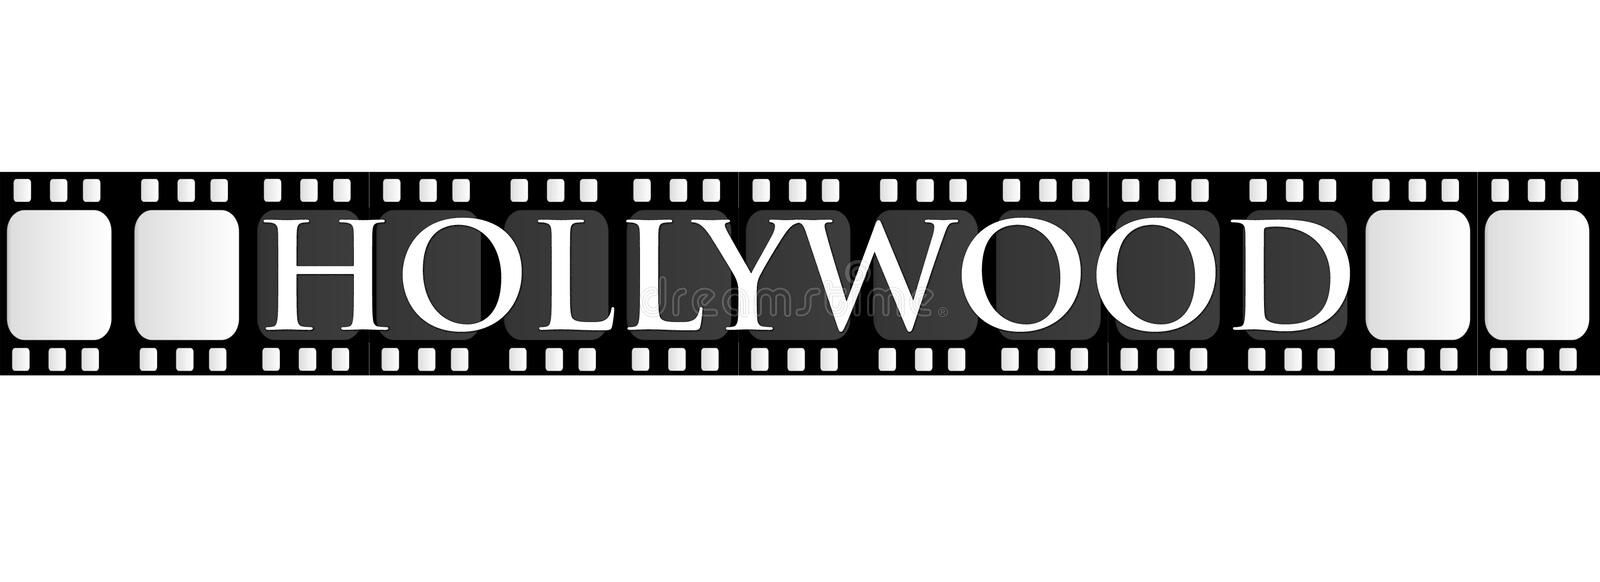 De Filmstrip van Hollywood vector illustratie